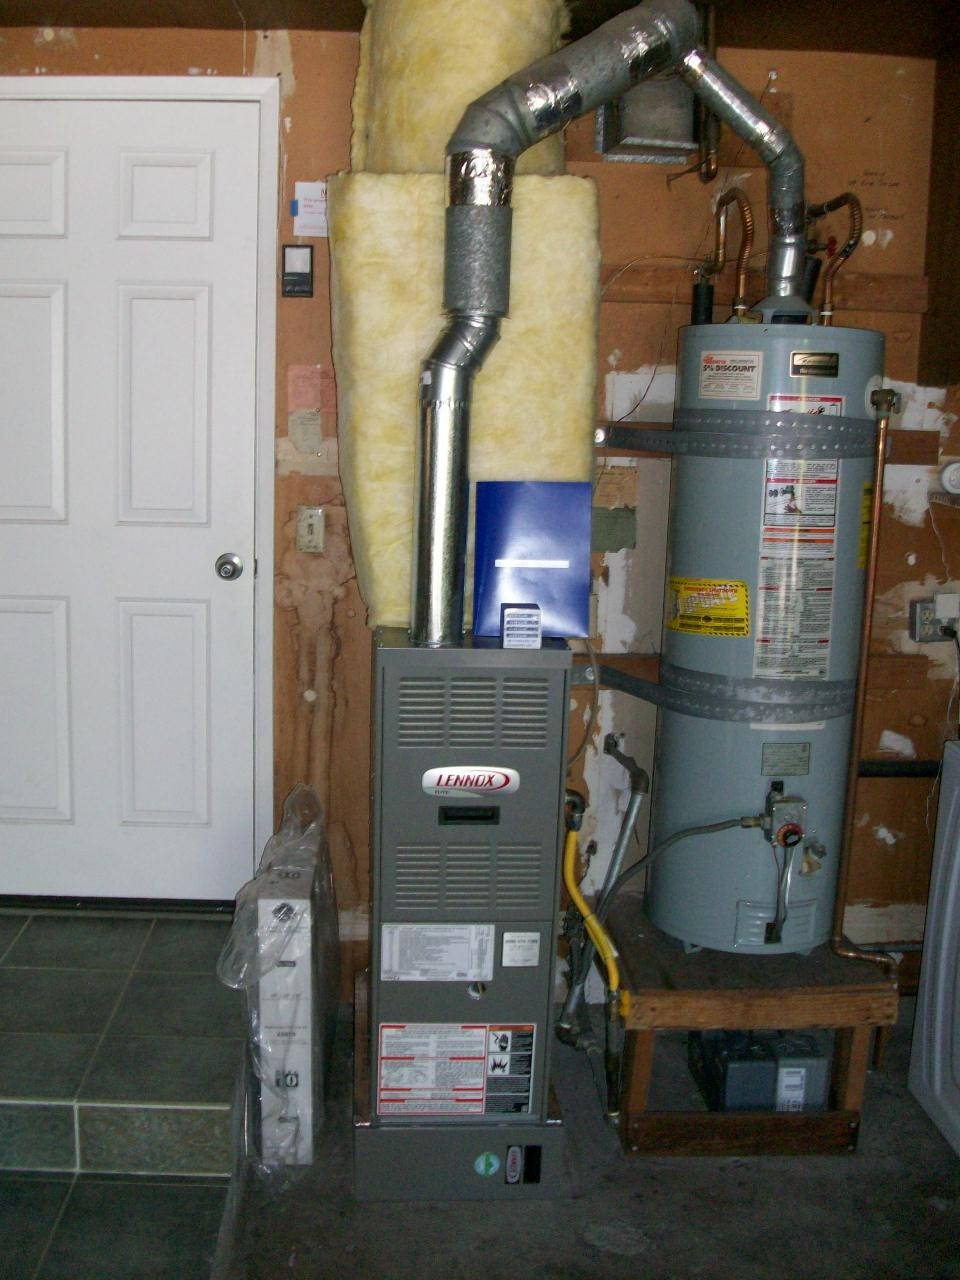 Furnace system in basement